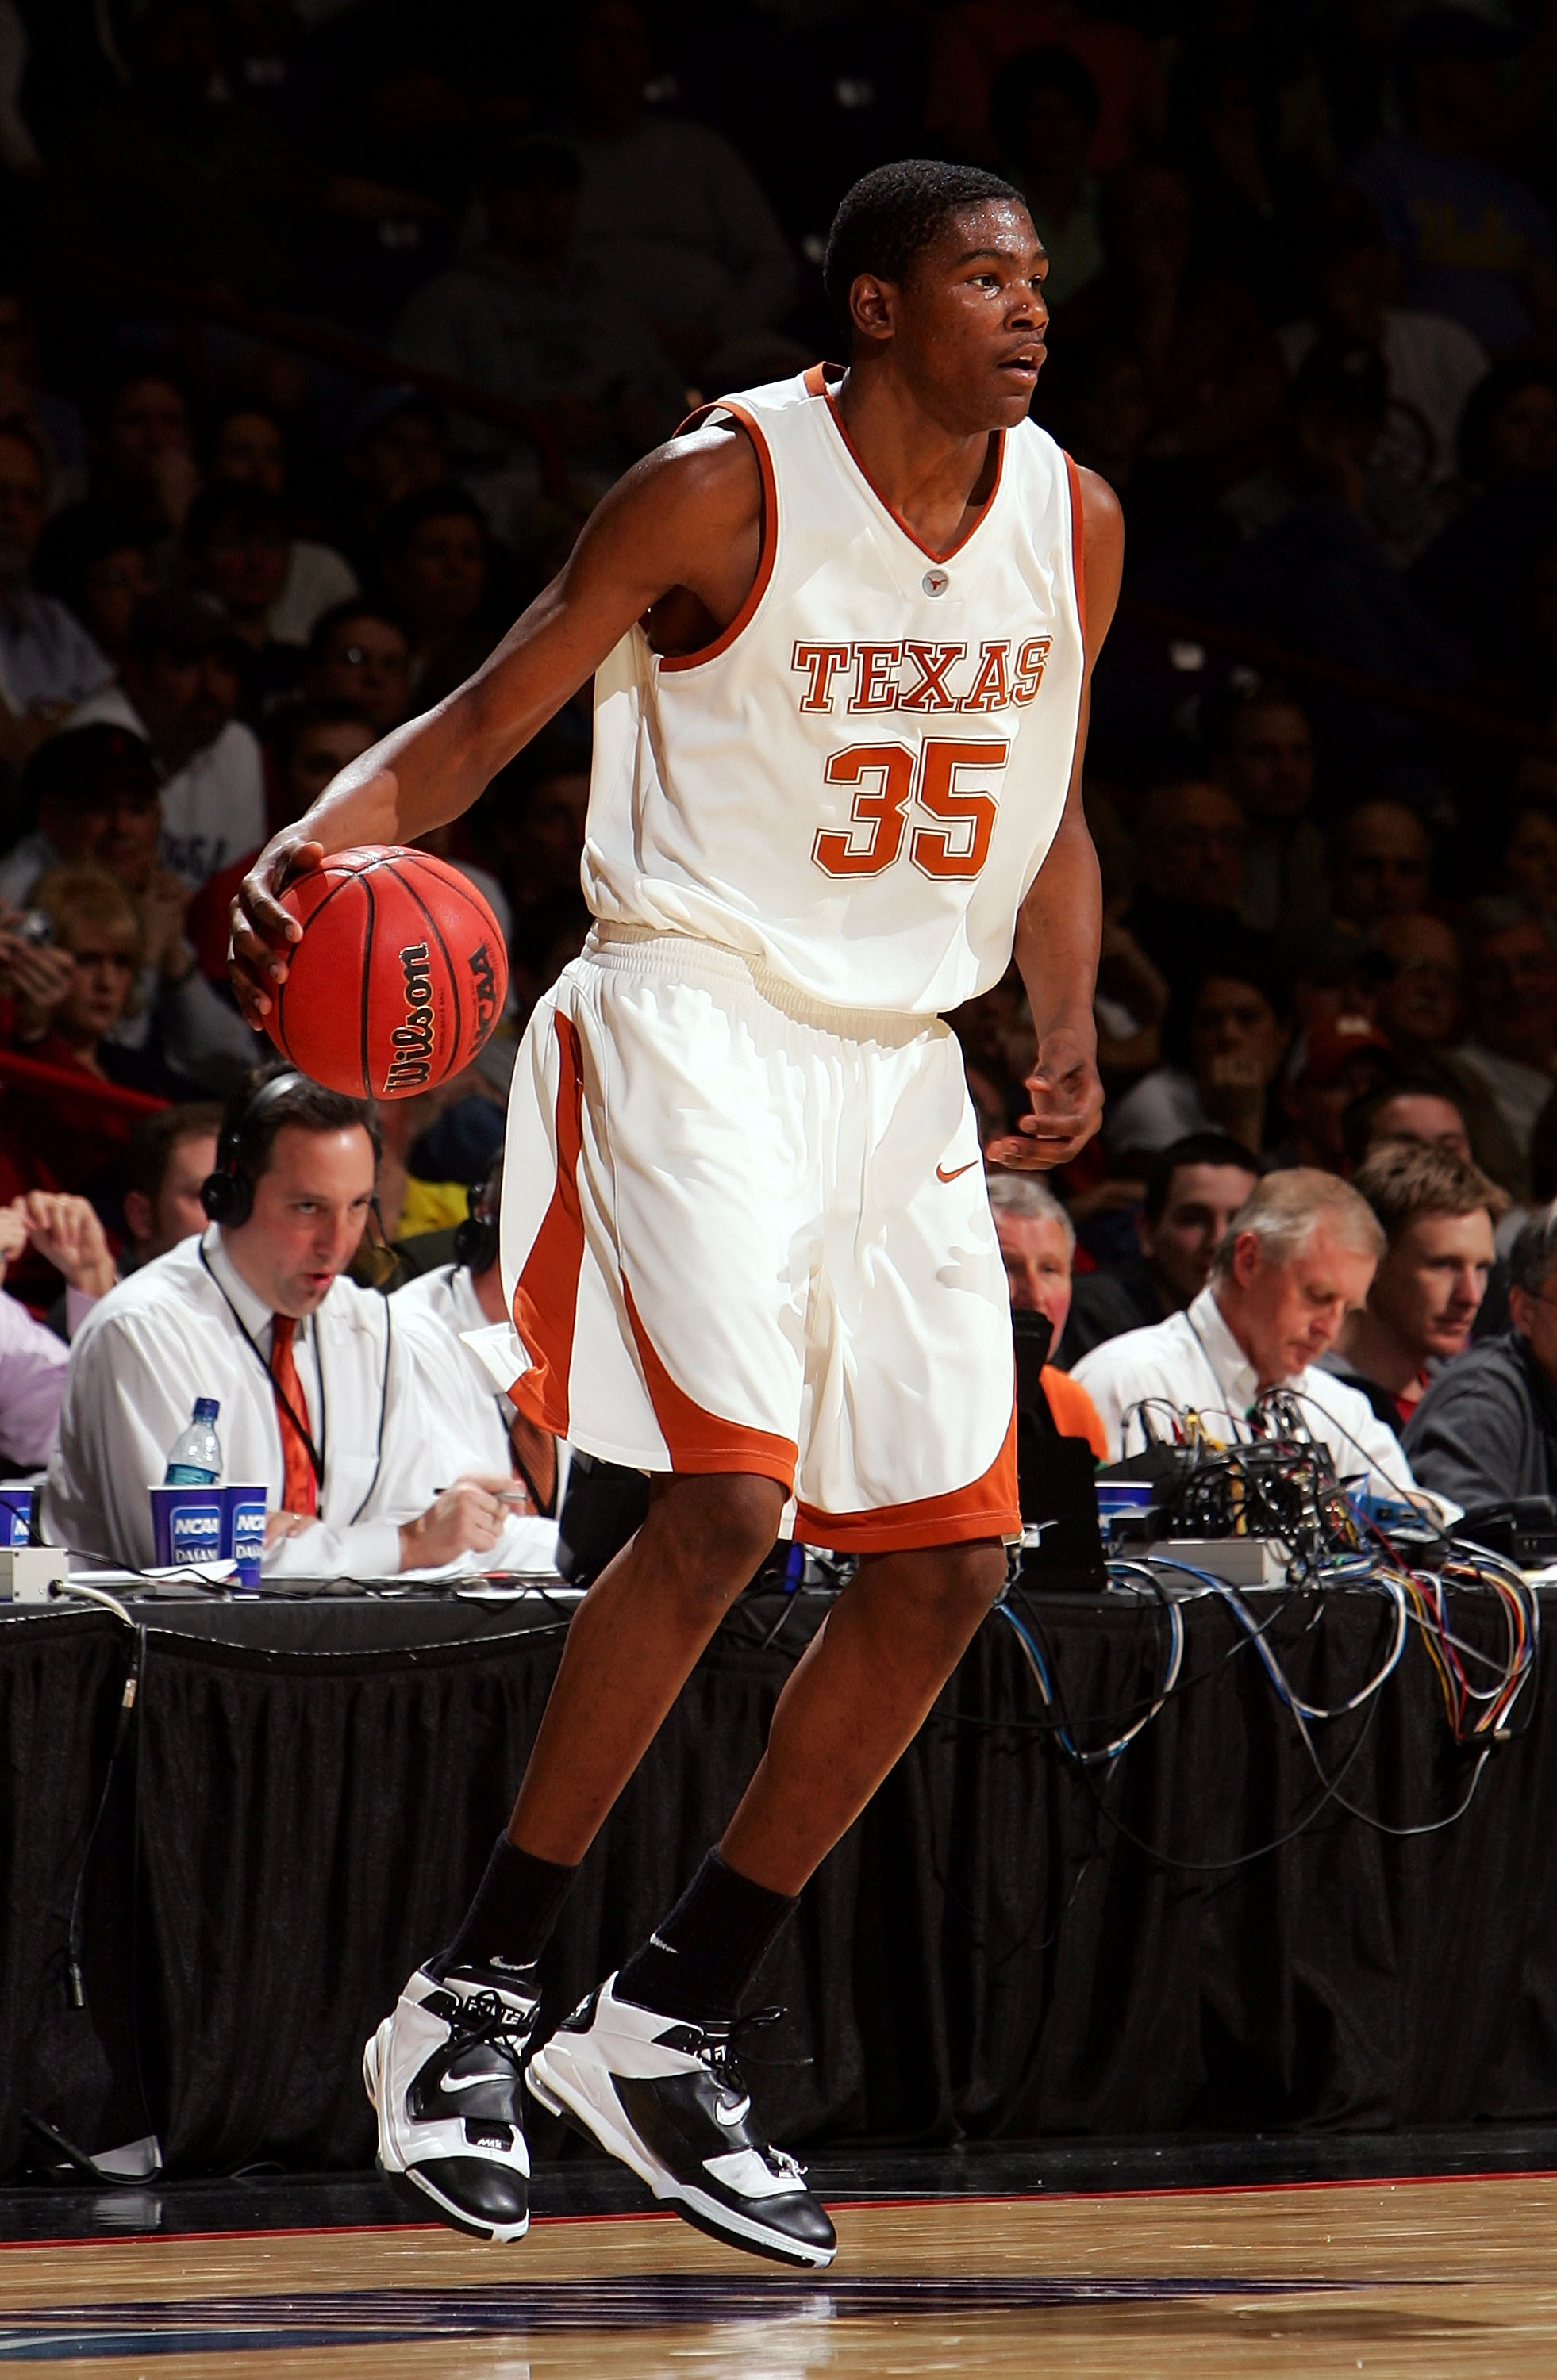 what college did kevin durant play for